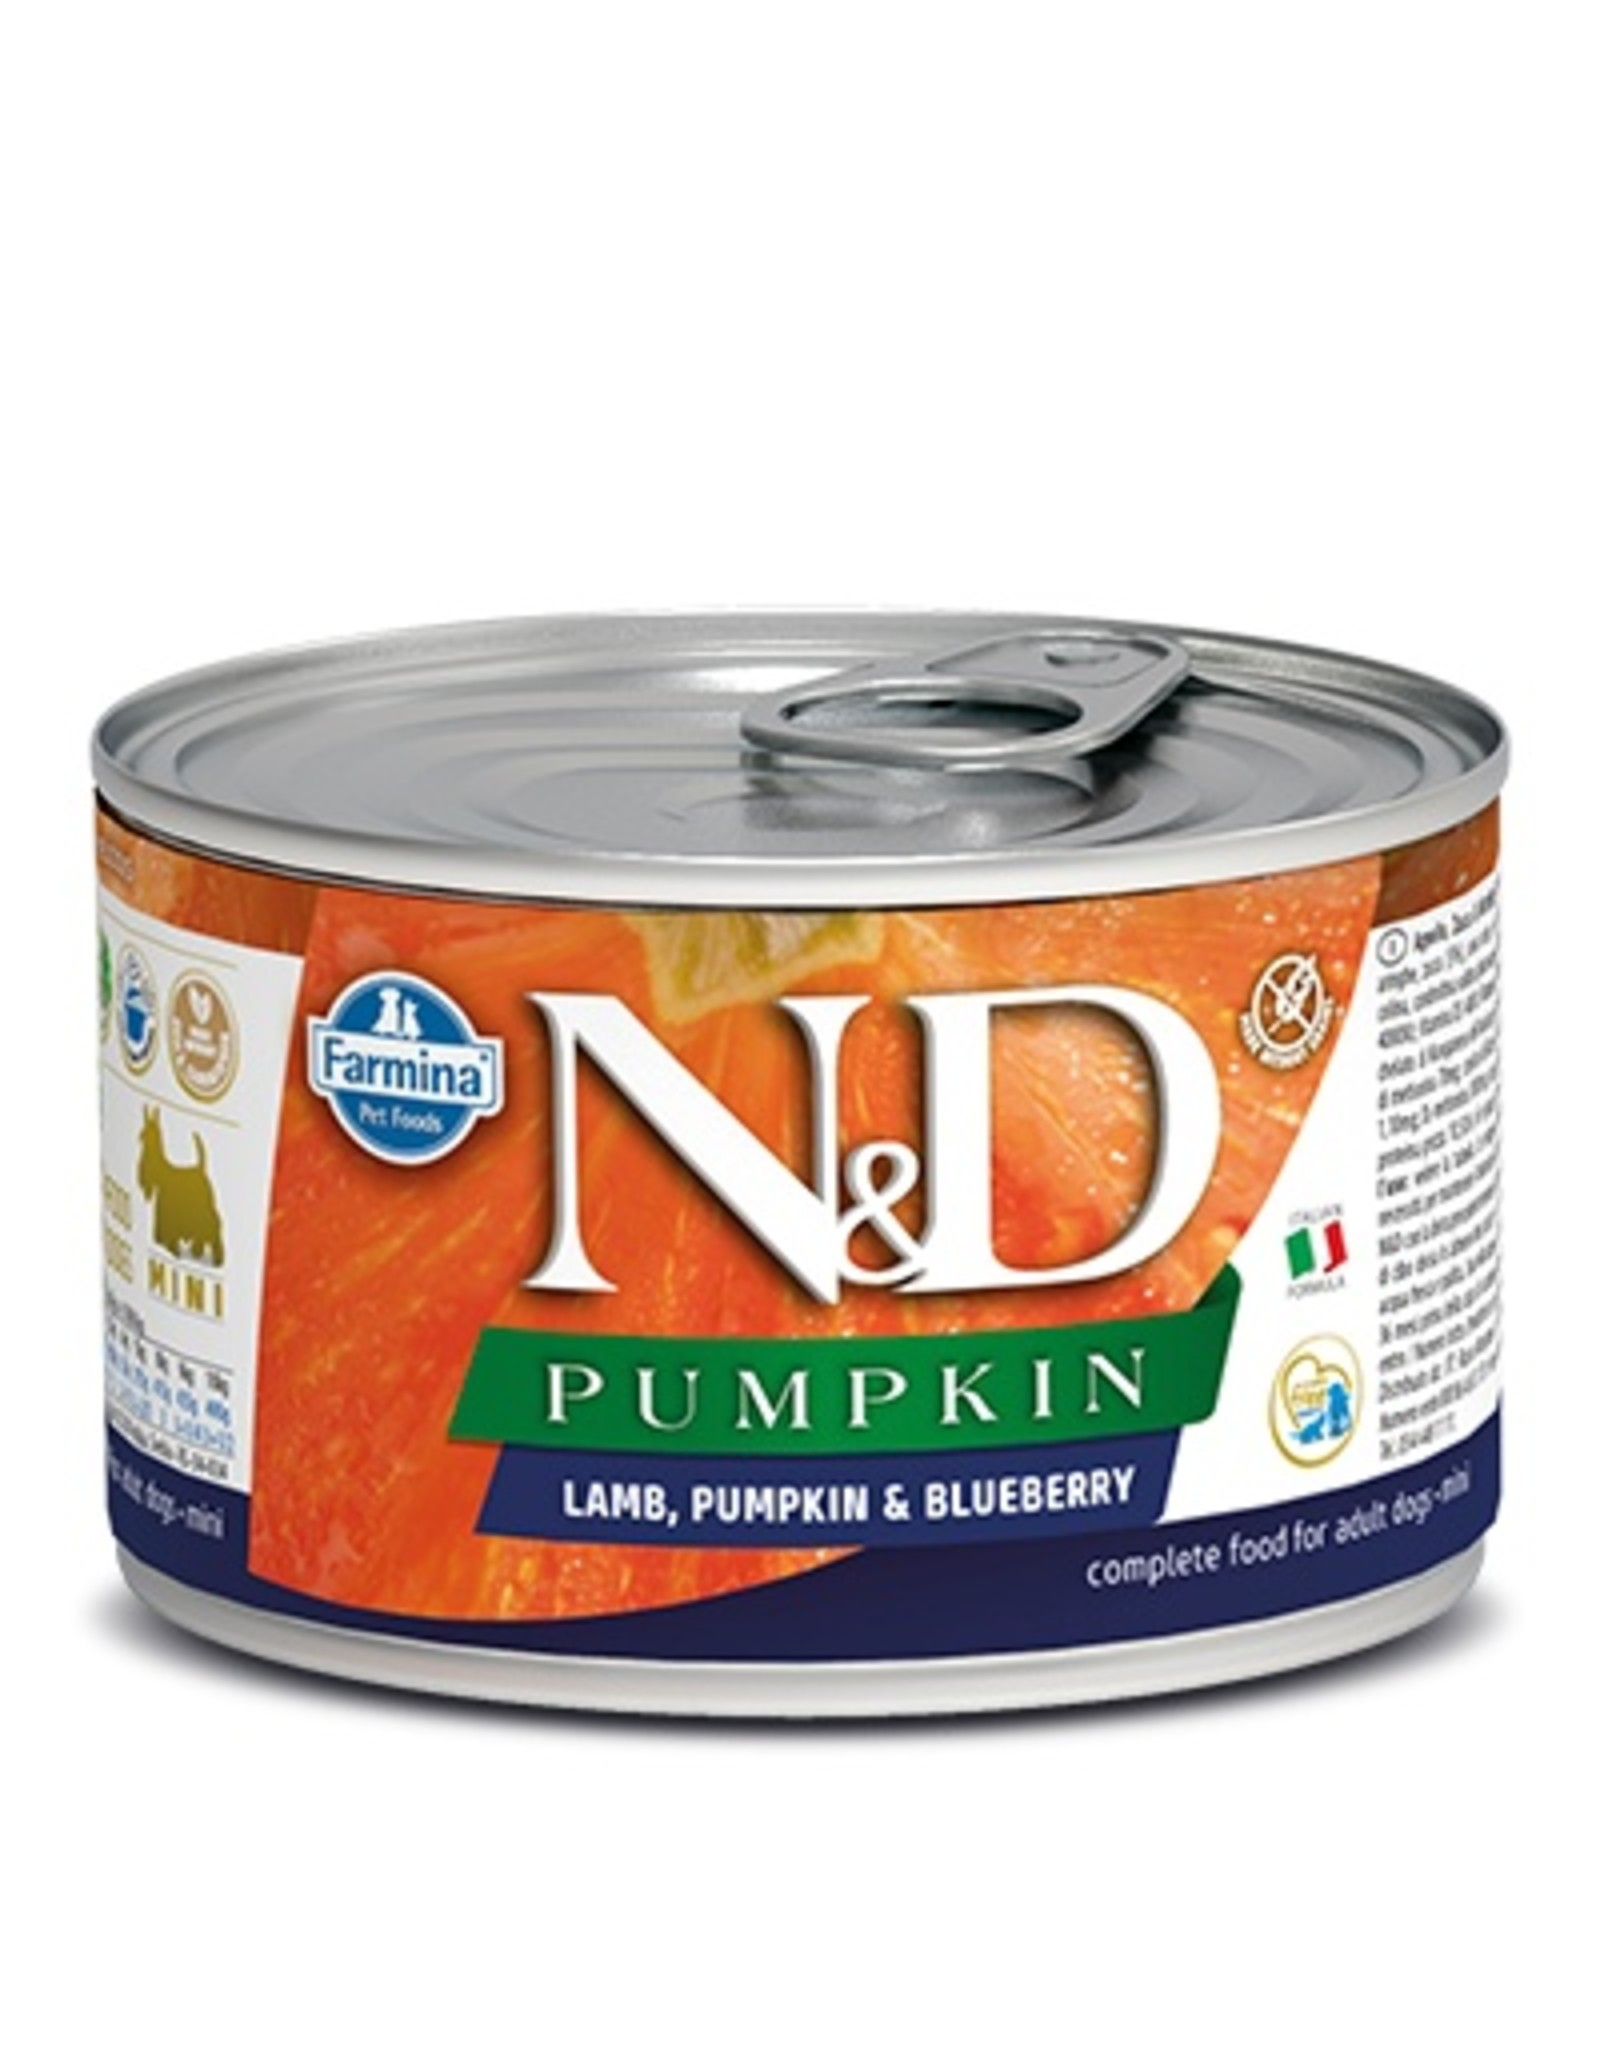 Farmina Farmina Dog N&D Pumpkin - Lamb & Pumpkin